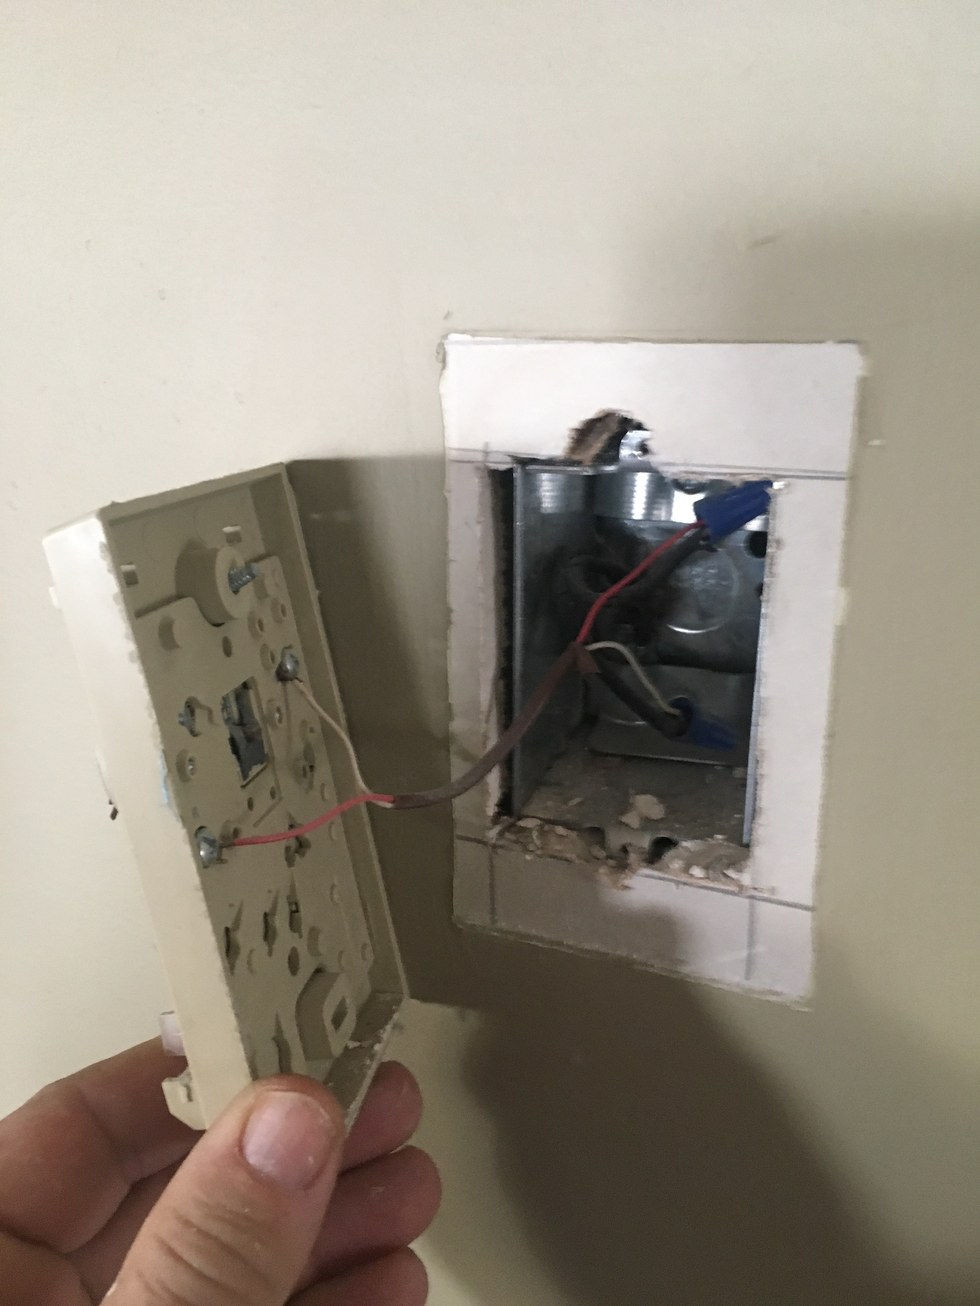 Review Of Honeywell Smart Wi Fi Thermostat For Homes Wiring Central Ac More Than Two Wires Connected You Might Have A C Wire But Still Need To Check The Diagram Your With That Needed